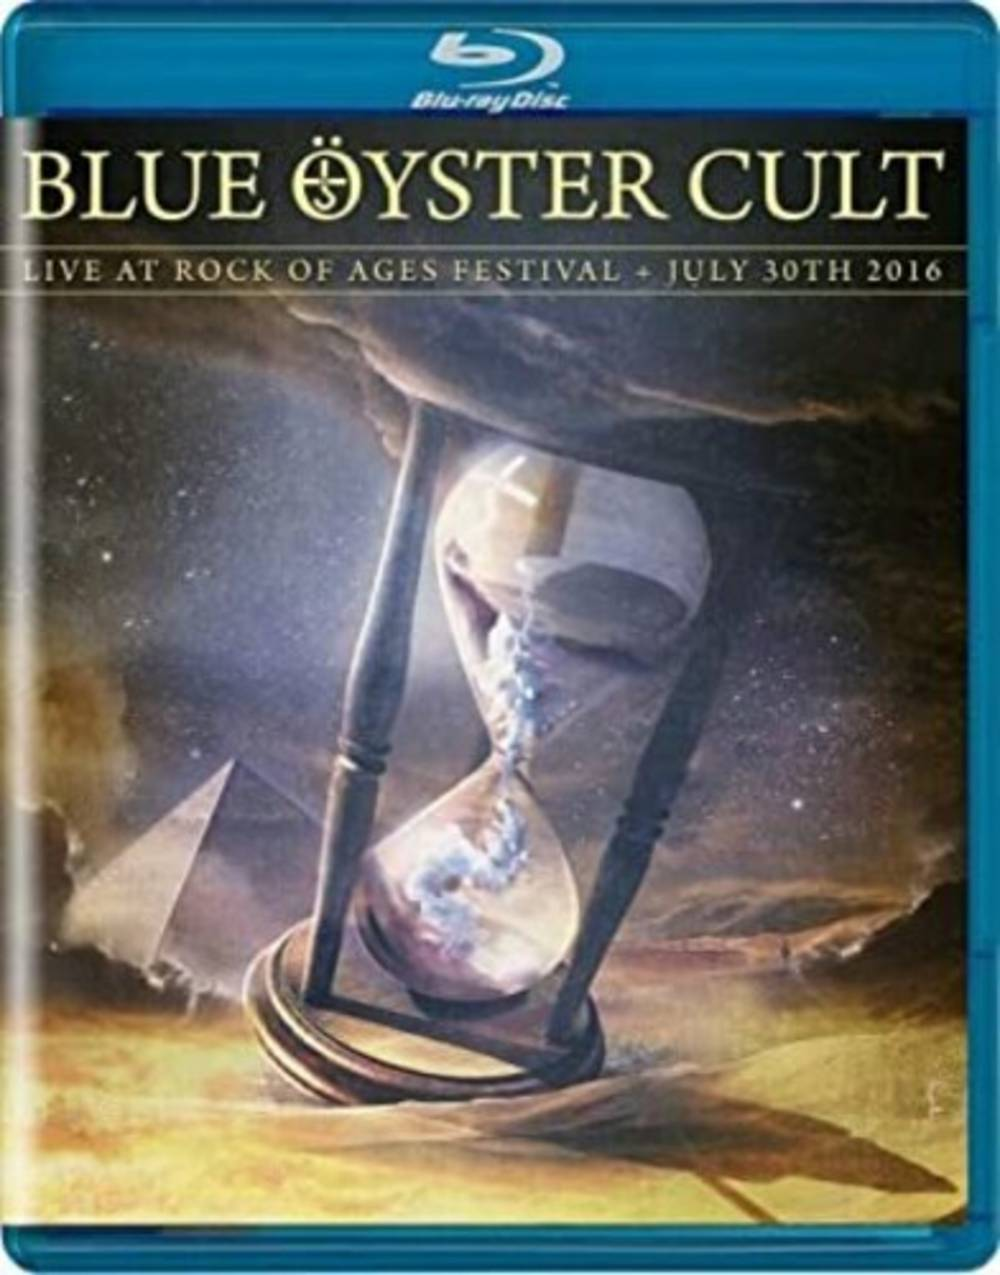 Blue Oyster Cult - Live At Rock Of Ages Festival 2016 [Blu-ray]